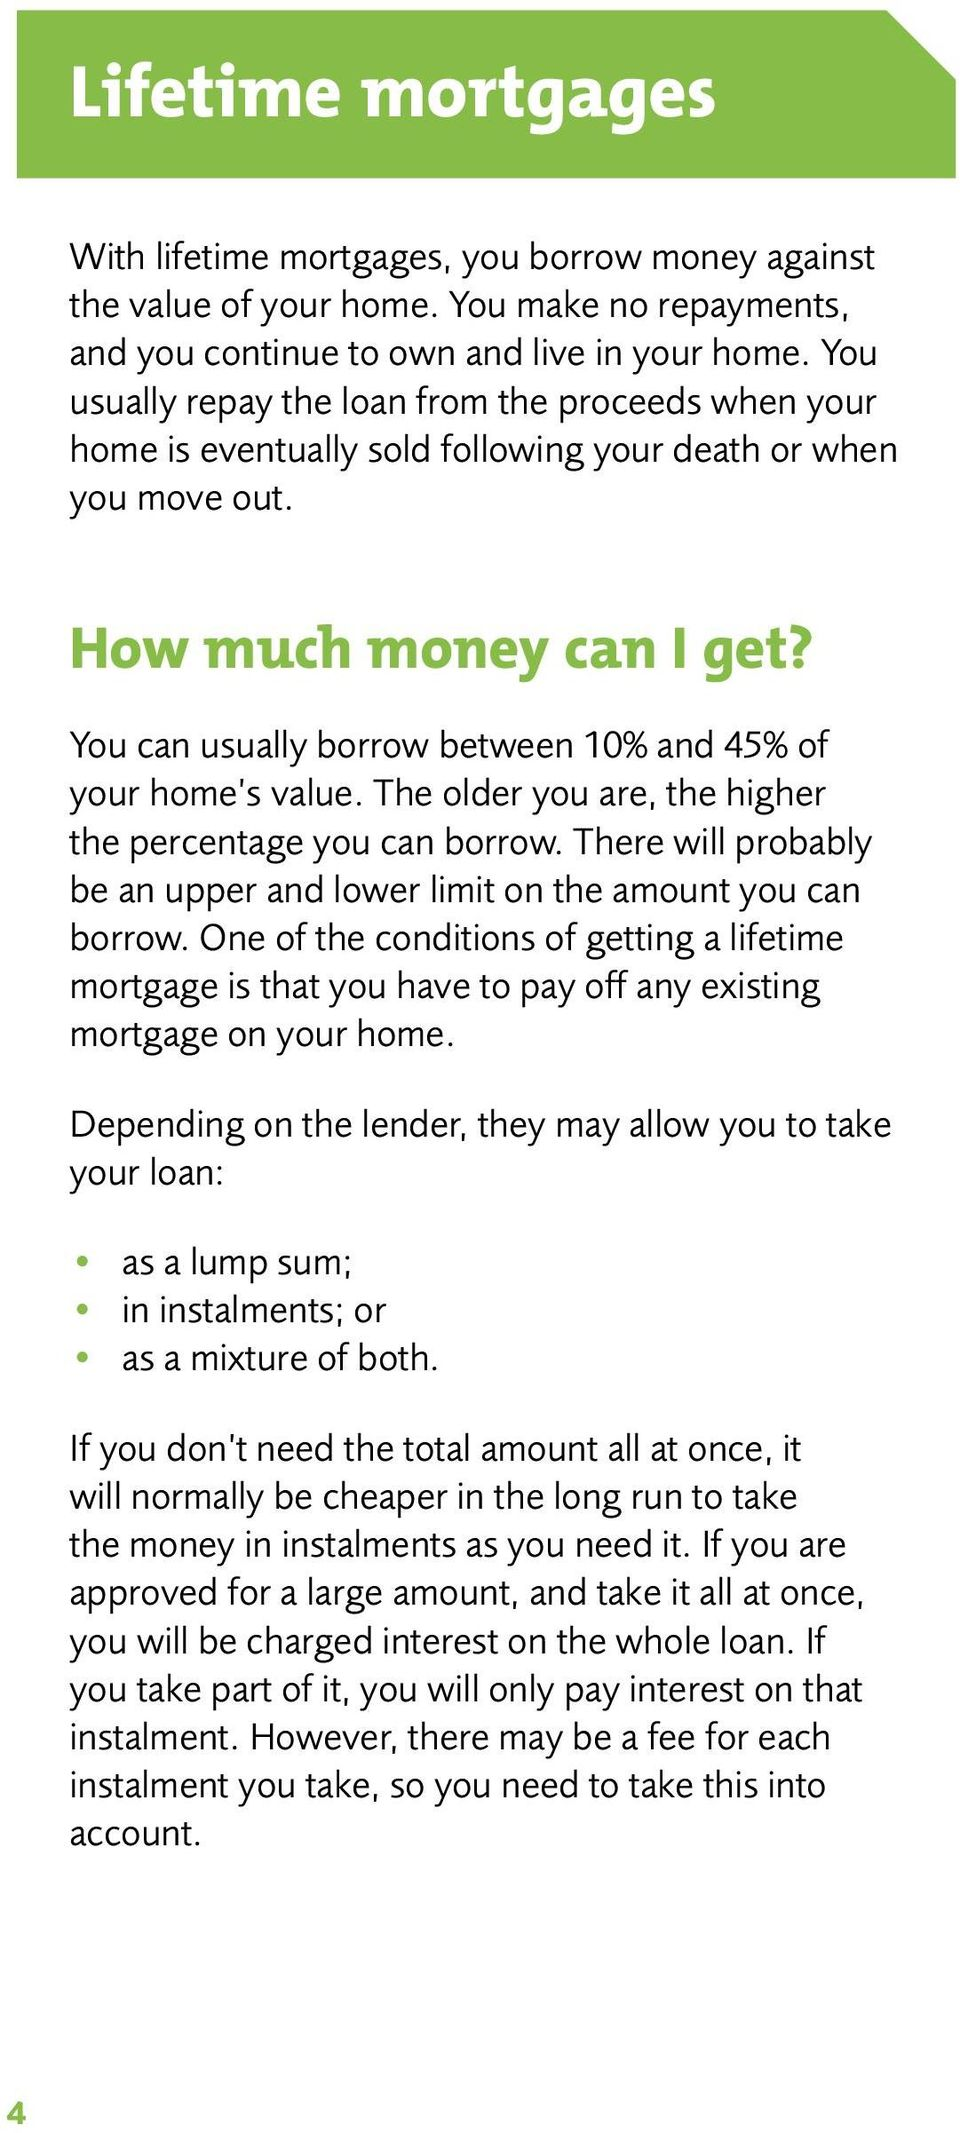 You can usually borrow between 10% and 45% of your home s value. The older you are, the higher the percentage you can borrow.